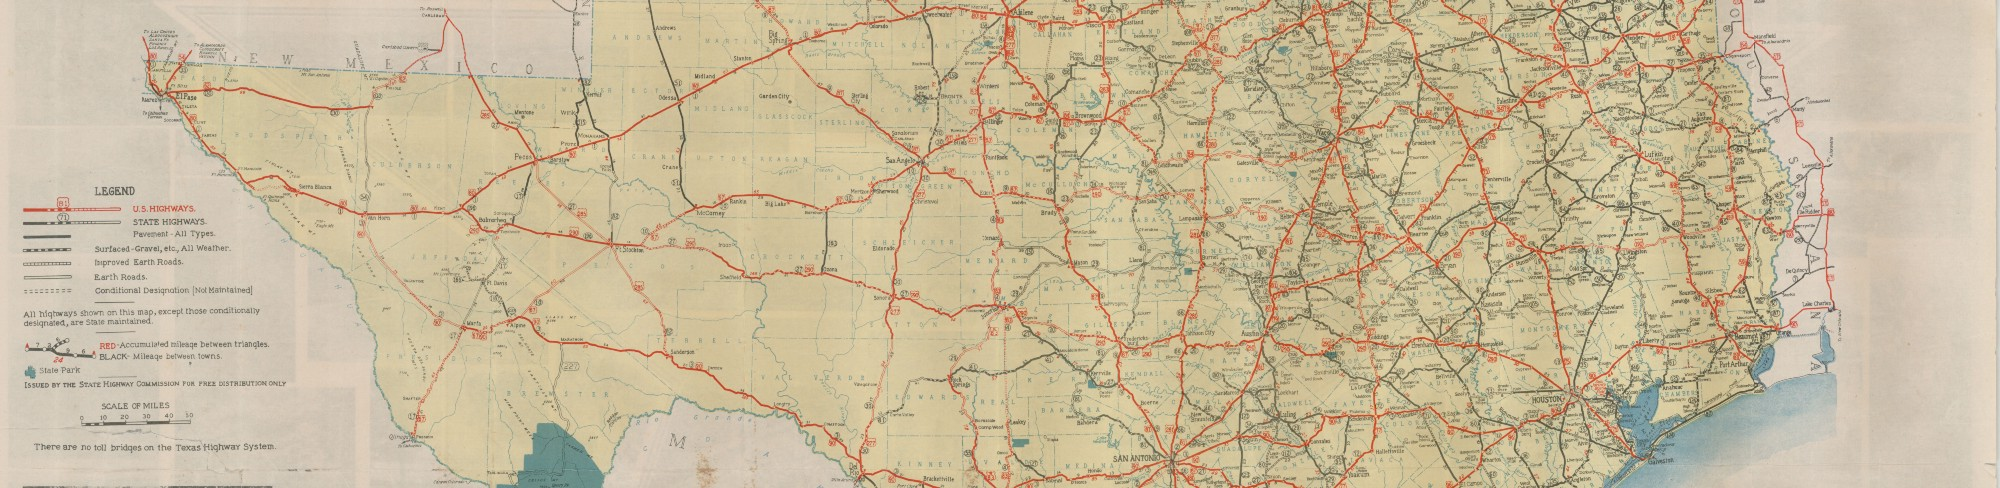 Official Map Of The Highway System Of Texas Save Texas - Texas road map